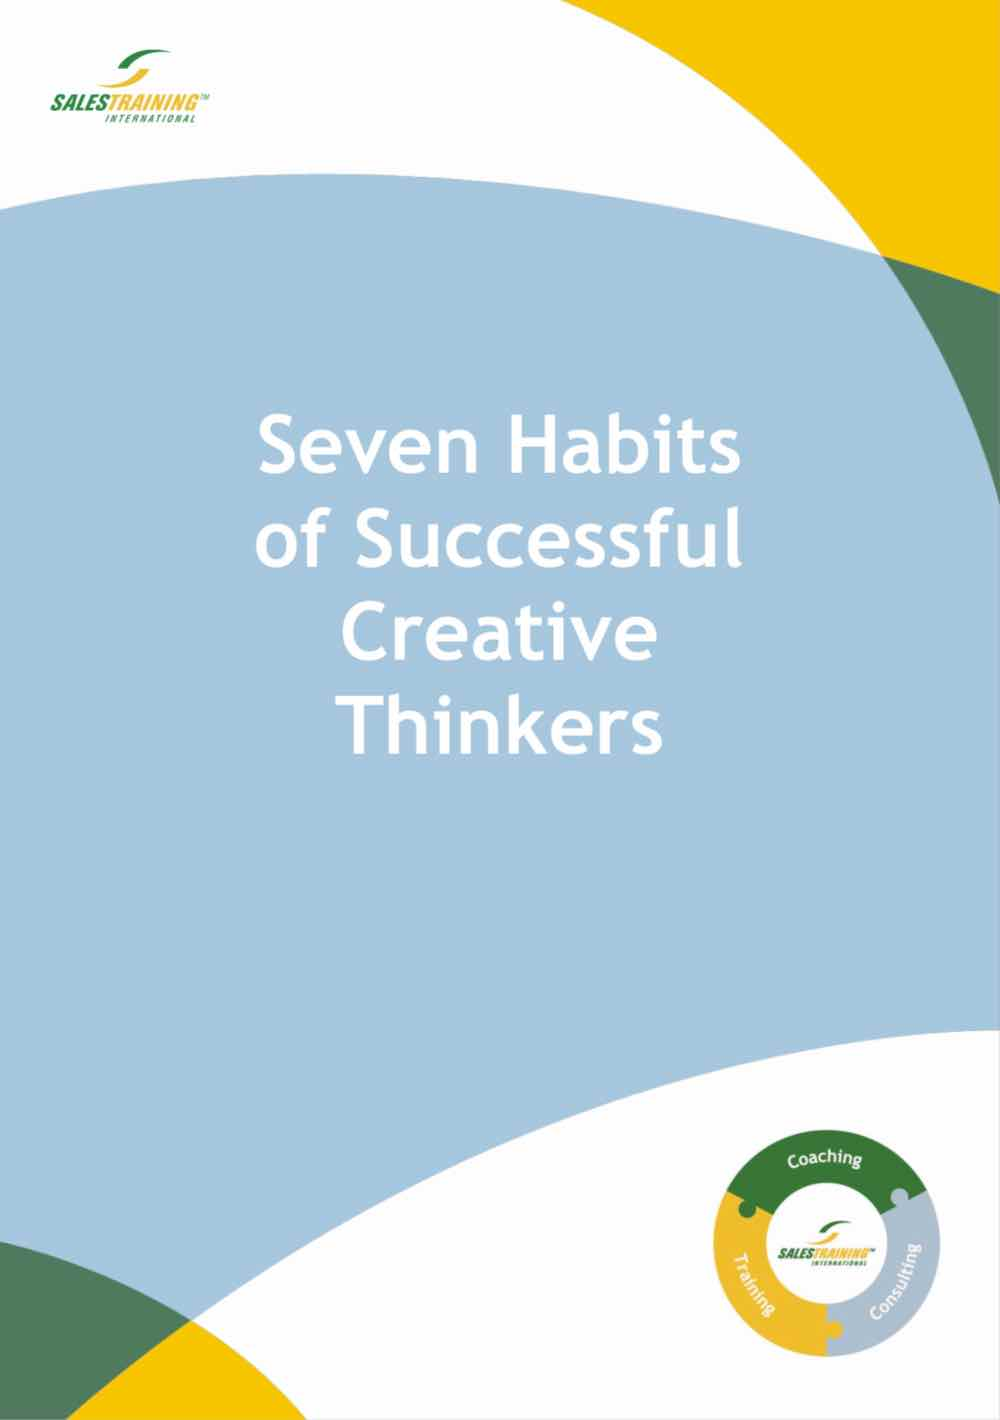 Seven Habits of Successful Creative Thinkers